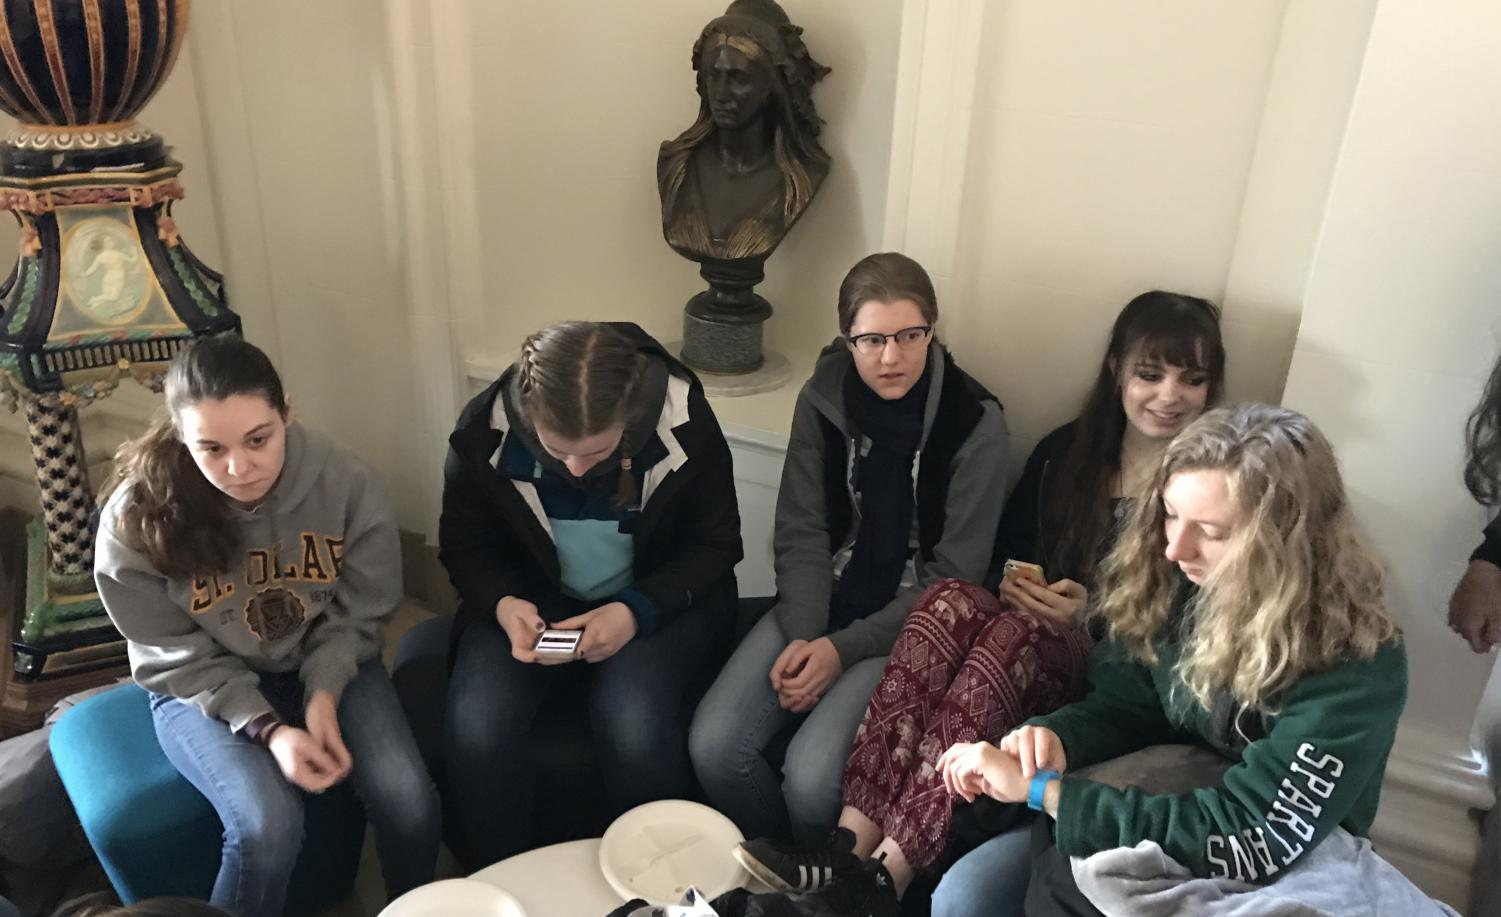 Seniors Mary Crawford, Claire Kosewic, Lizzie Bruce, Sarah Mahnke-Baum and Sydney O'Neil sit together in the Main Hall before departing for Marin. The group left Convent around 8 a.m. Friday morning and plans to return Saturday afternoon at 2 p.m.